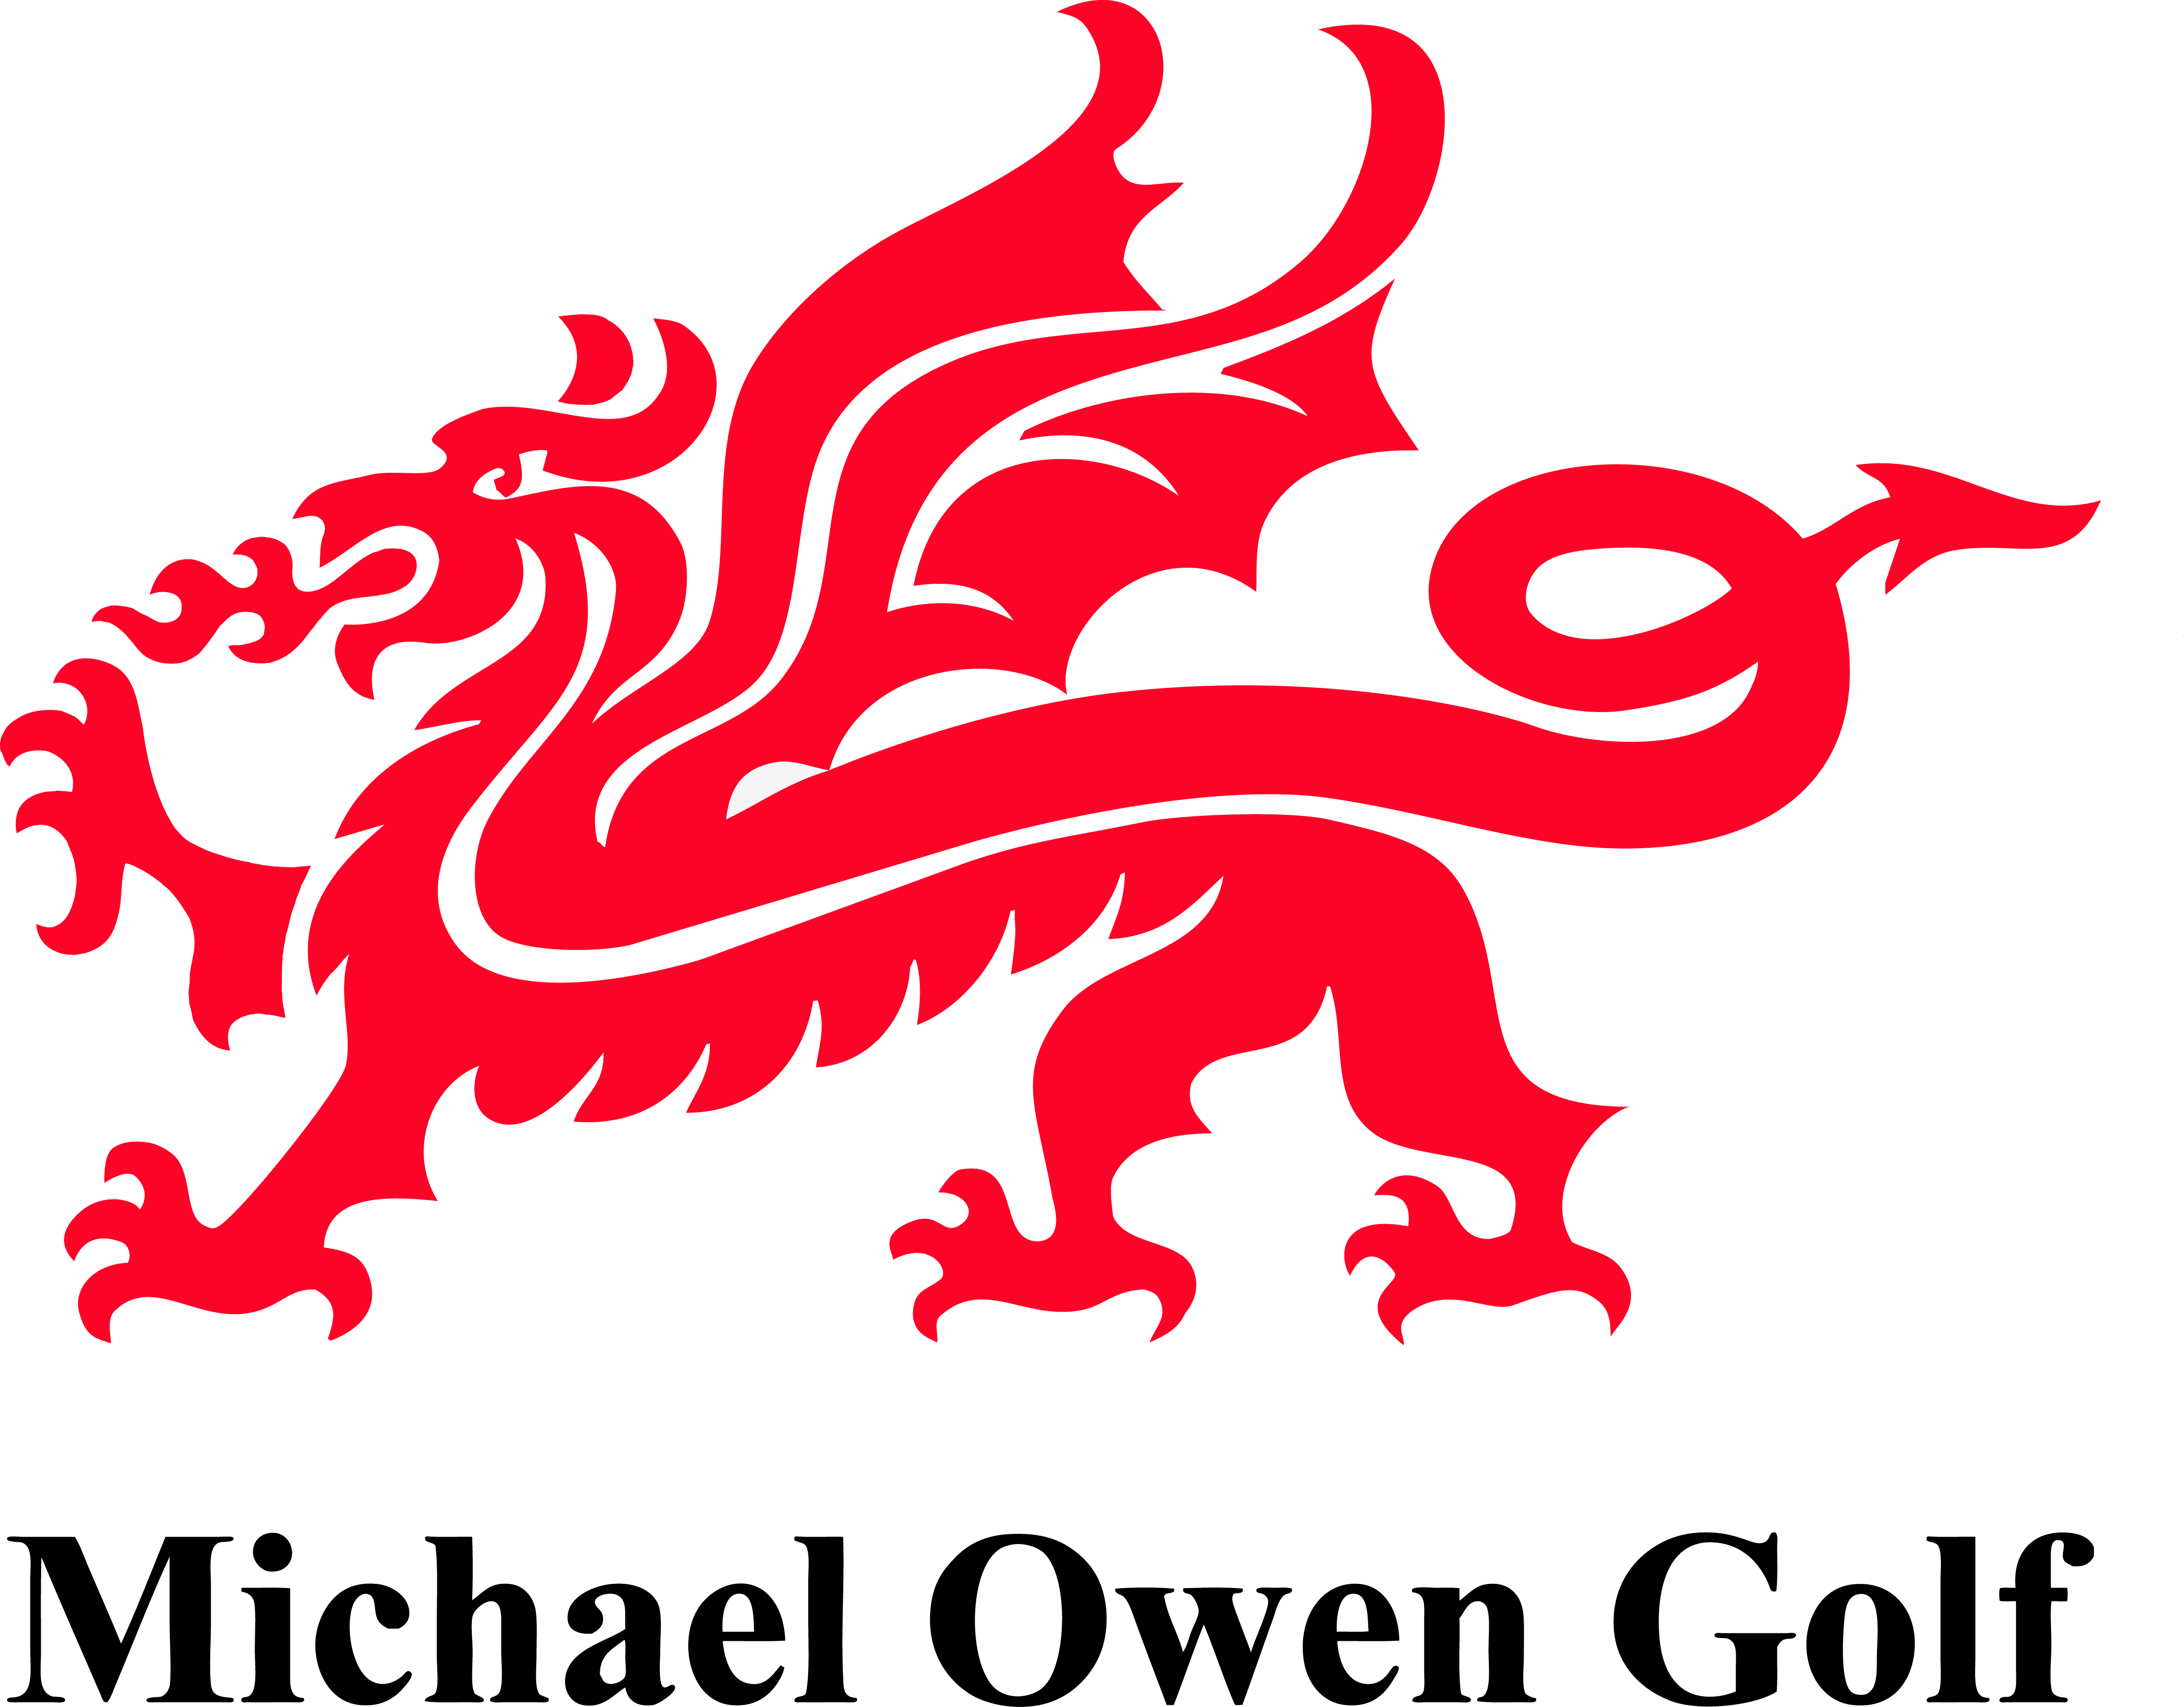 Michael Owen Golf